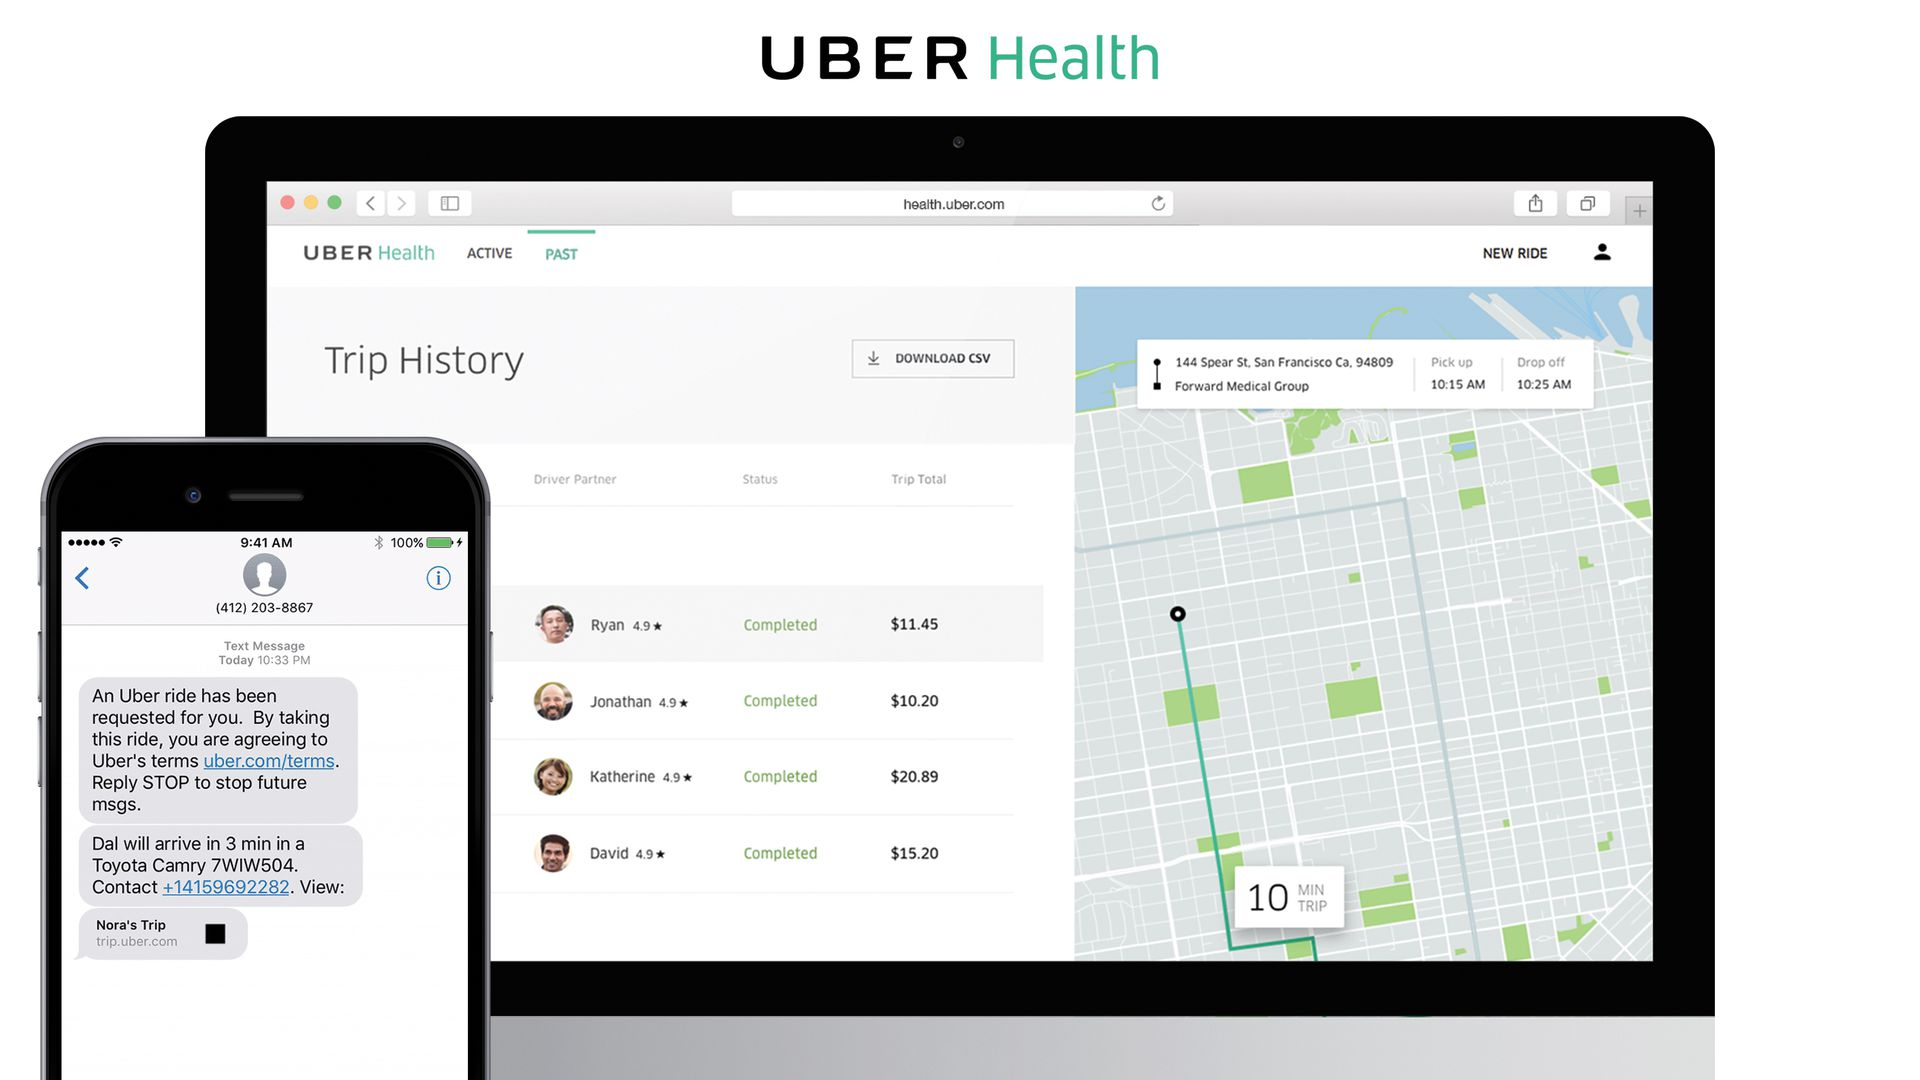 A computer screen and smartphone showing the Uber Health app.